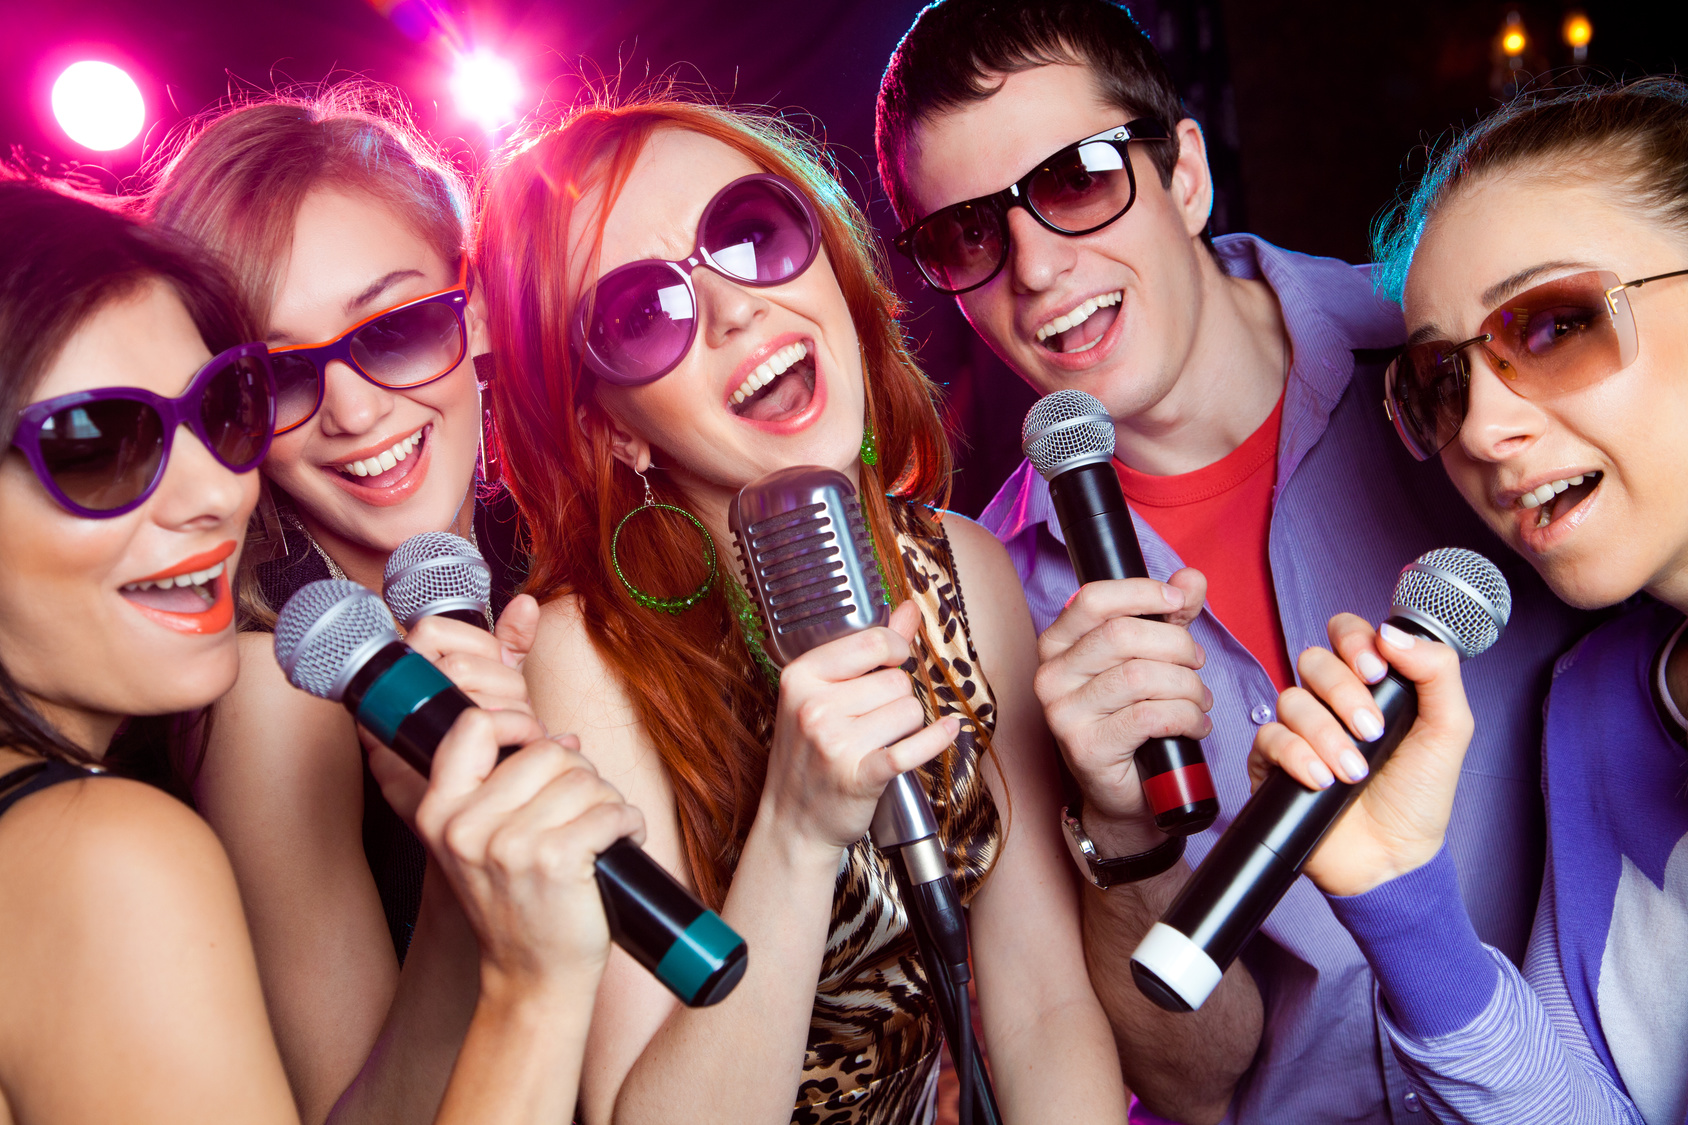 Selin Dion With Your Compagny Vik Karaoke Box